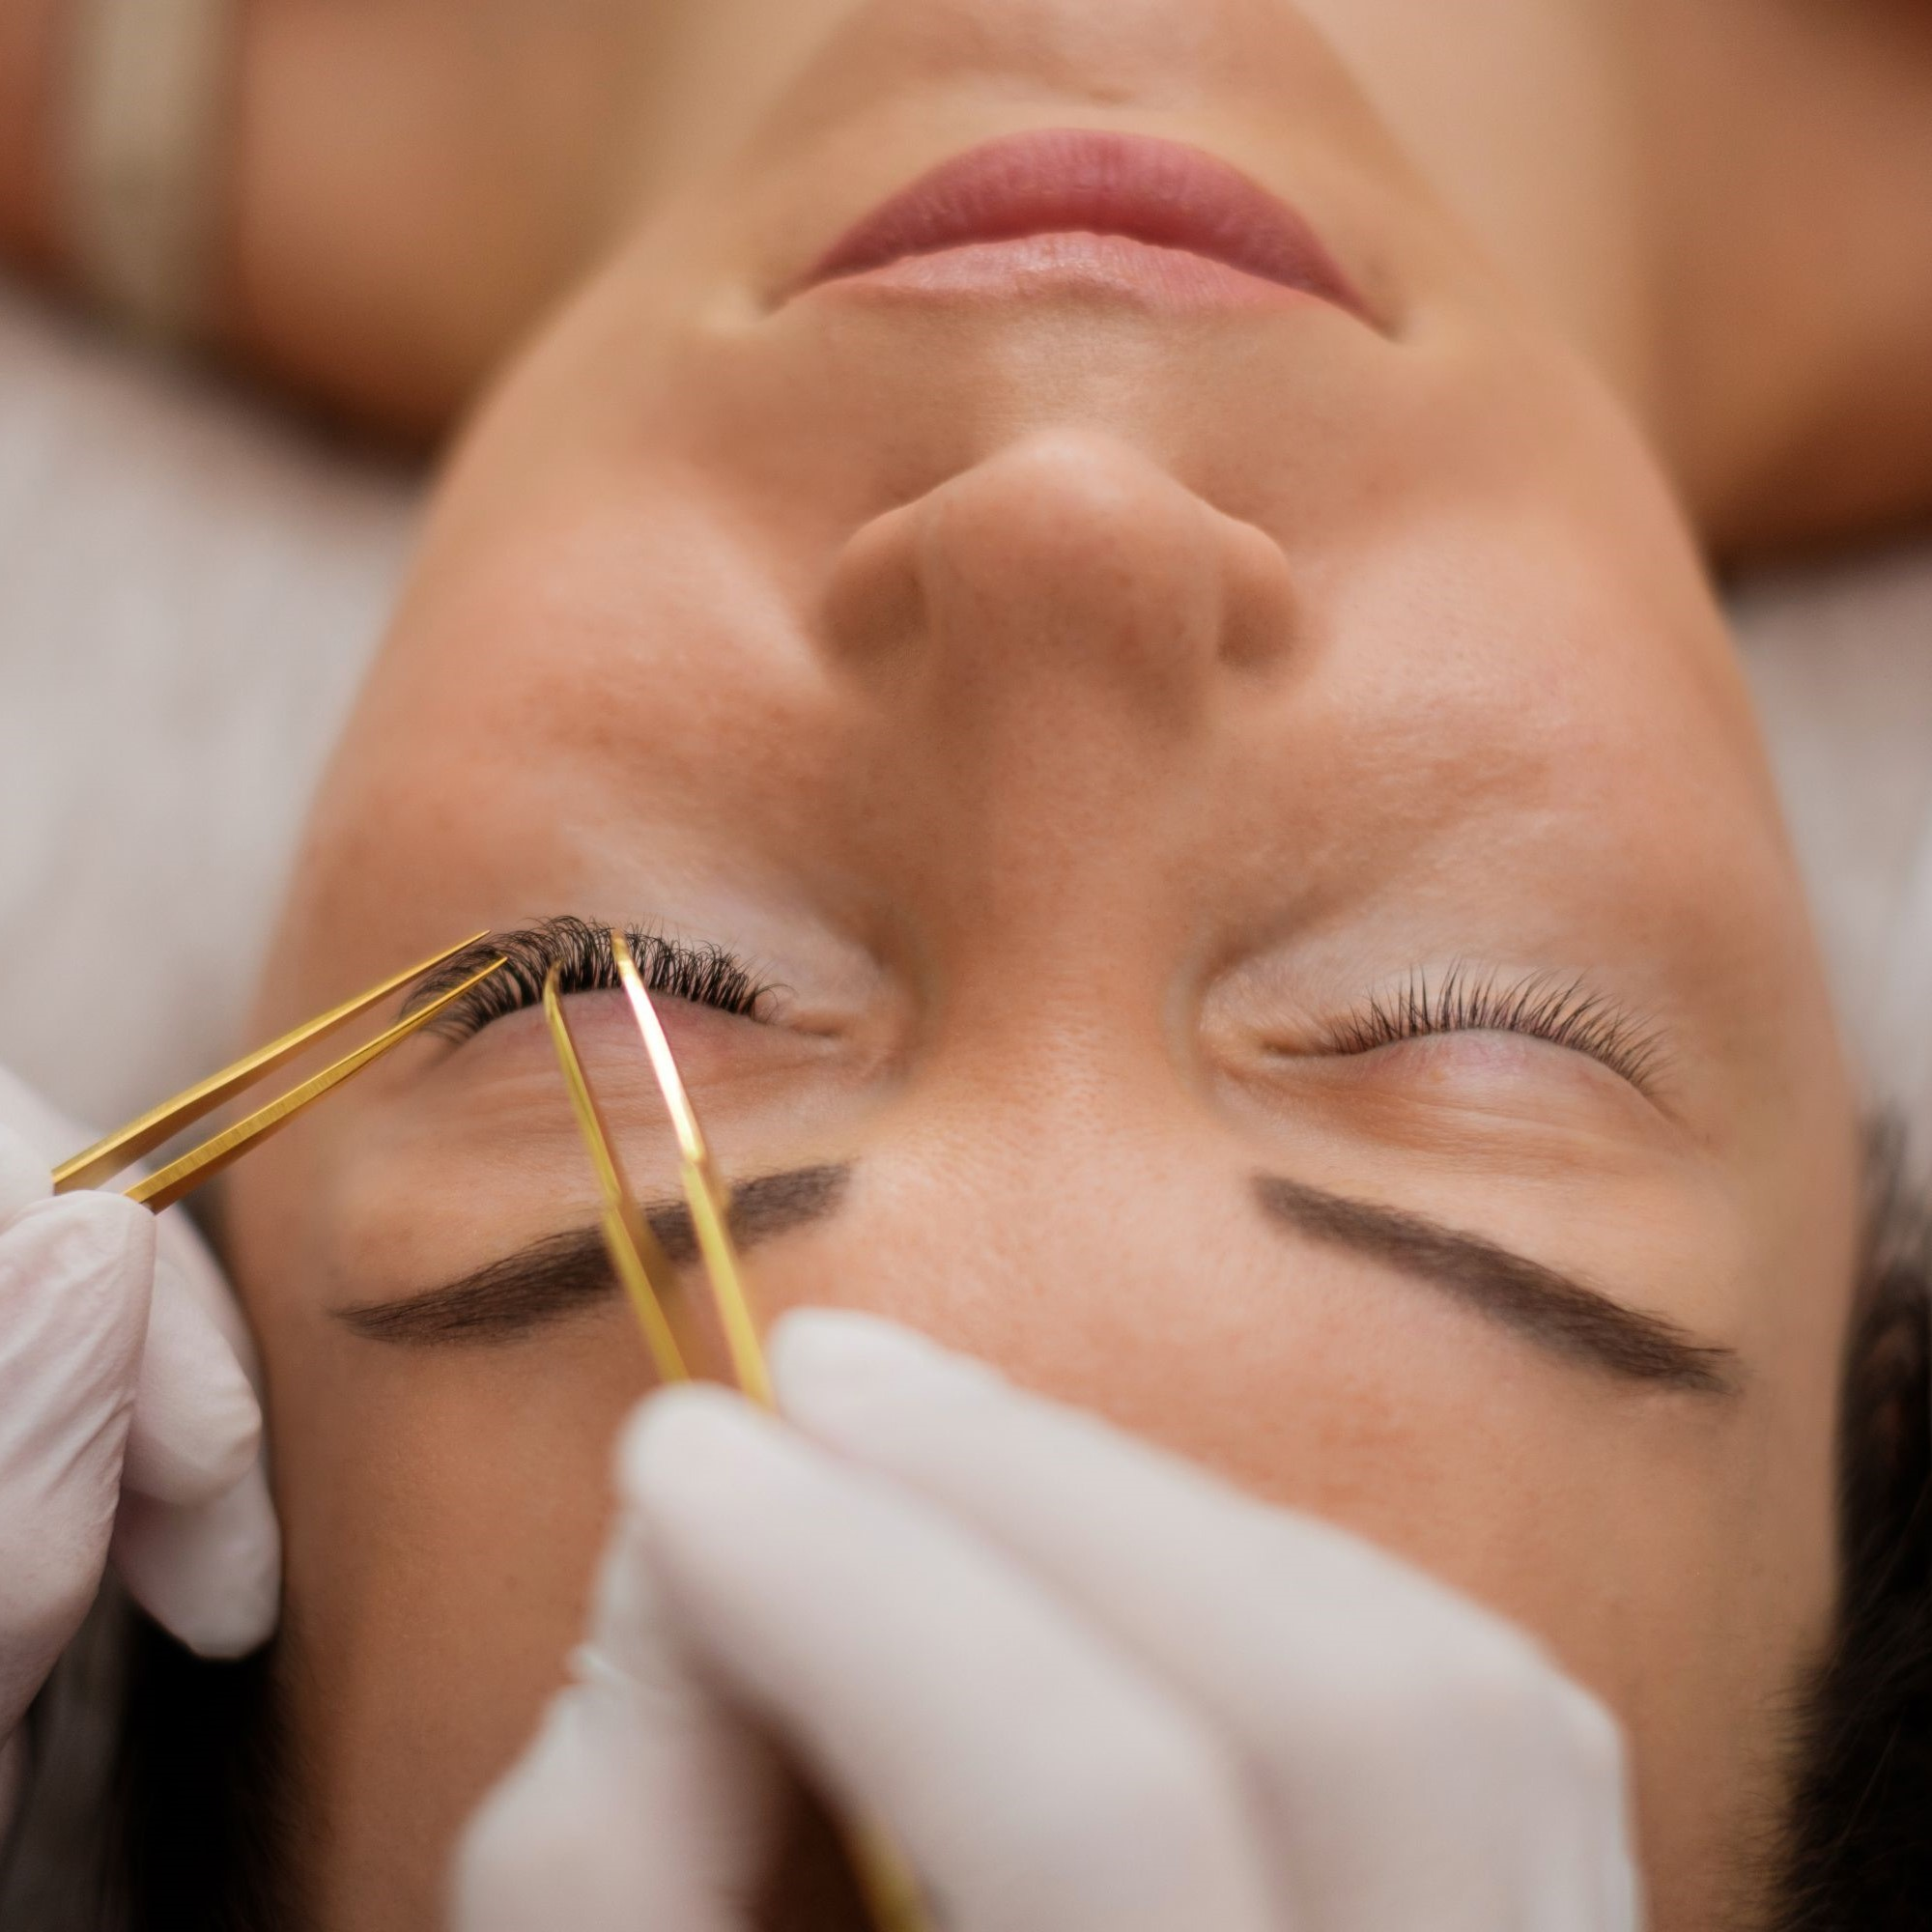 Classic Eyebrow Embroidery for 1 Person (1 Session)